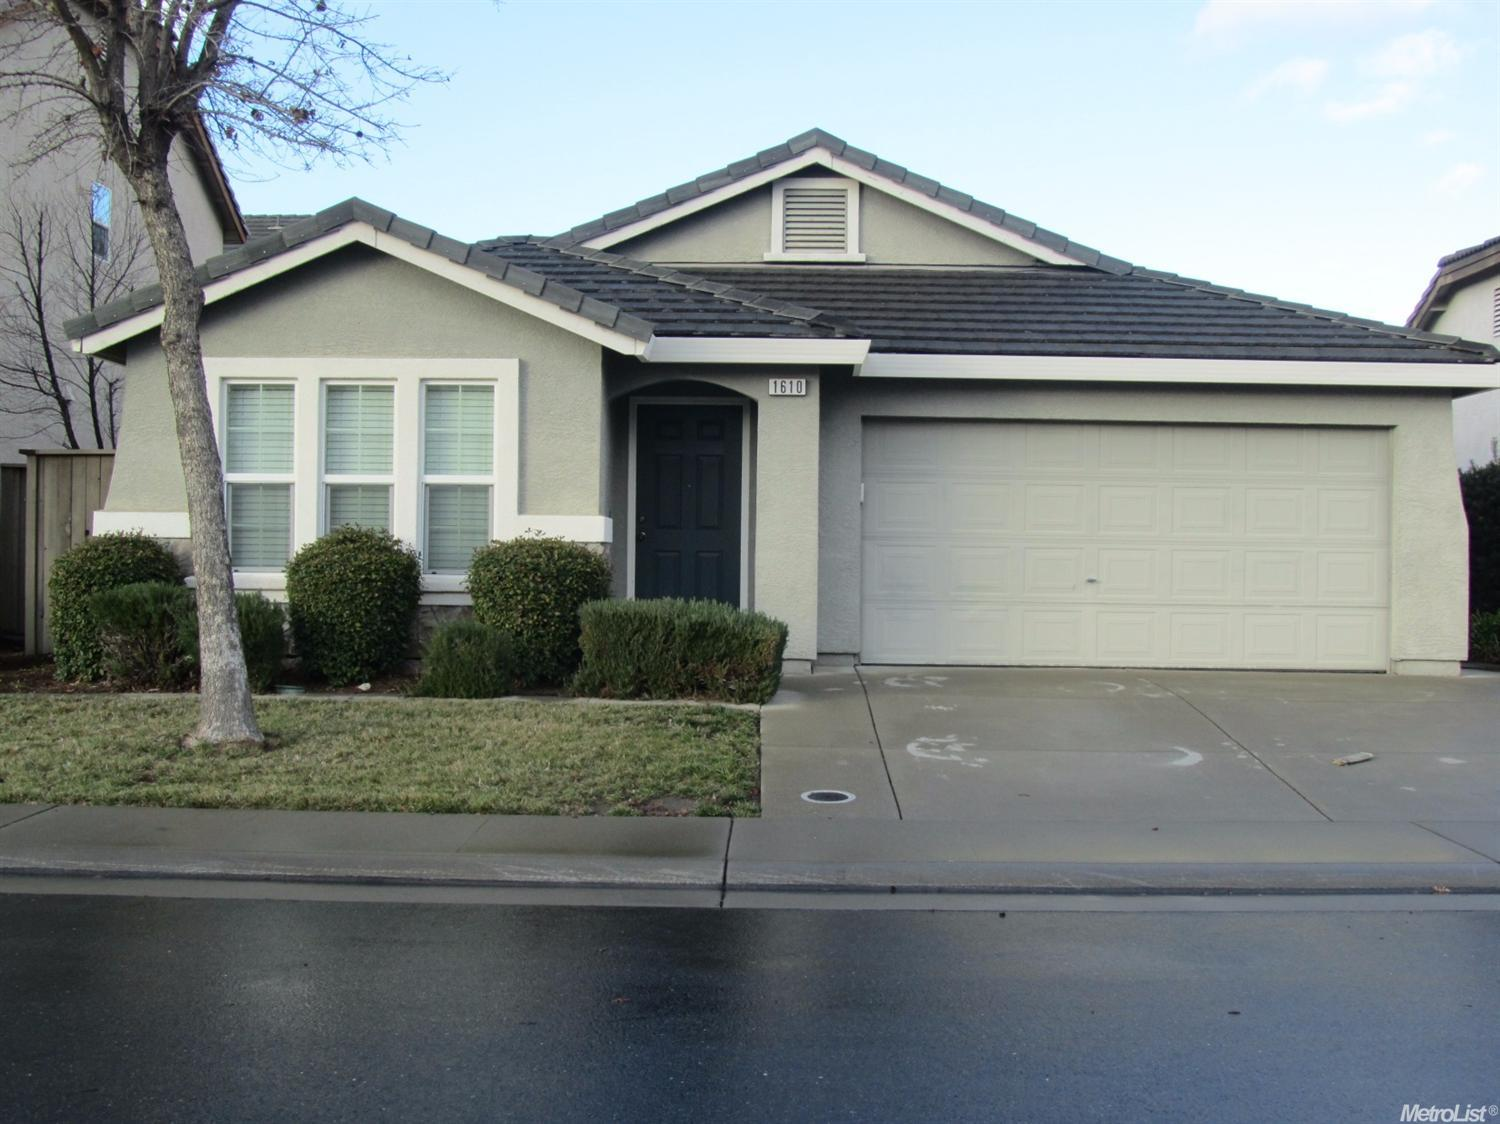 1610 Loon Lake St, Roseville, CA